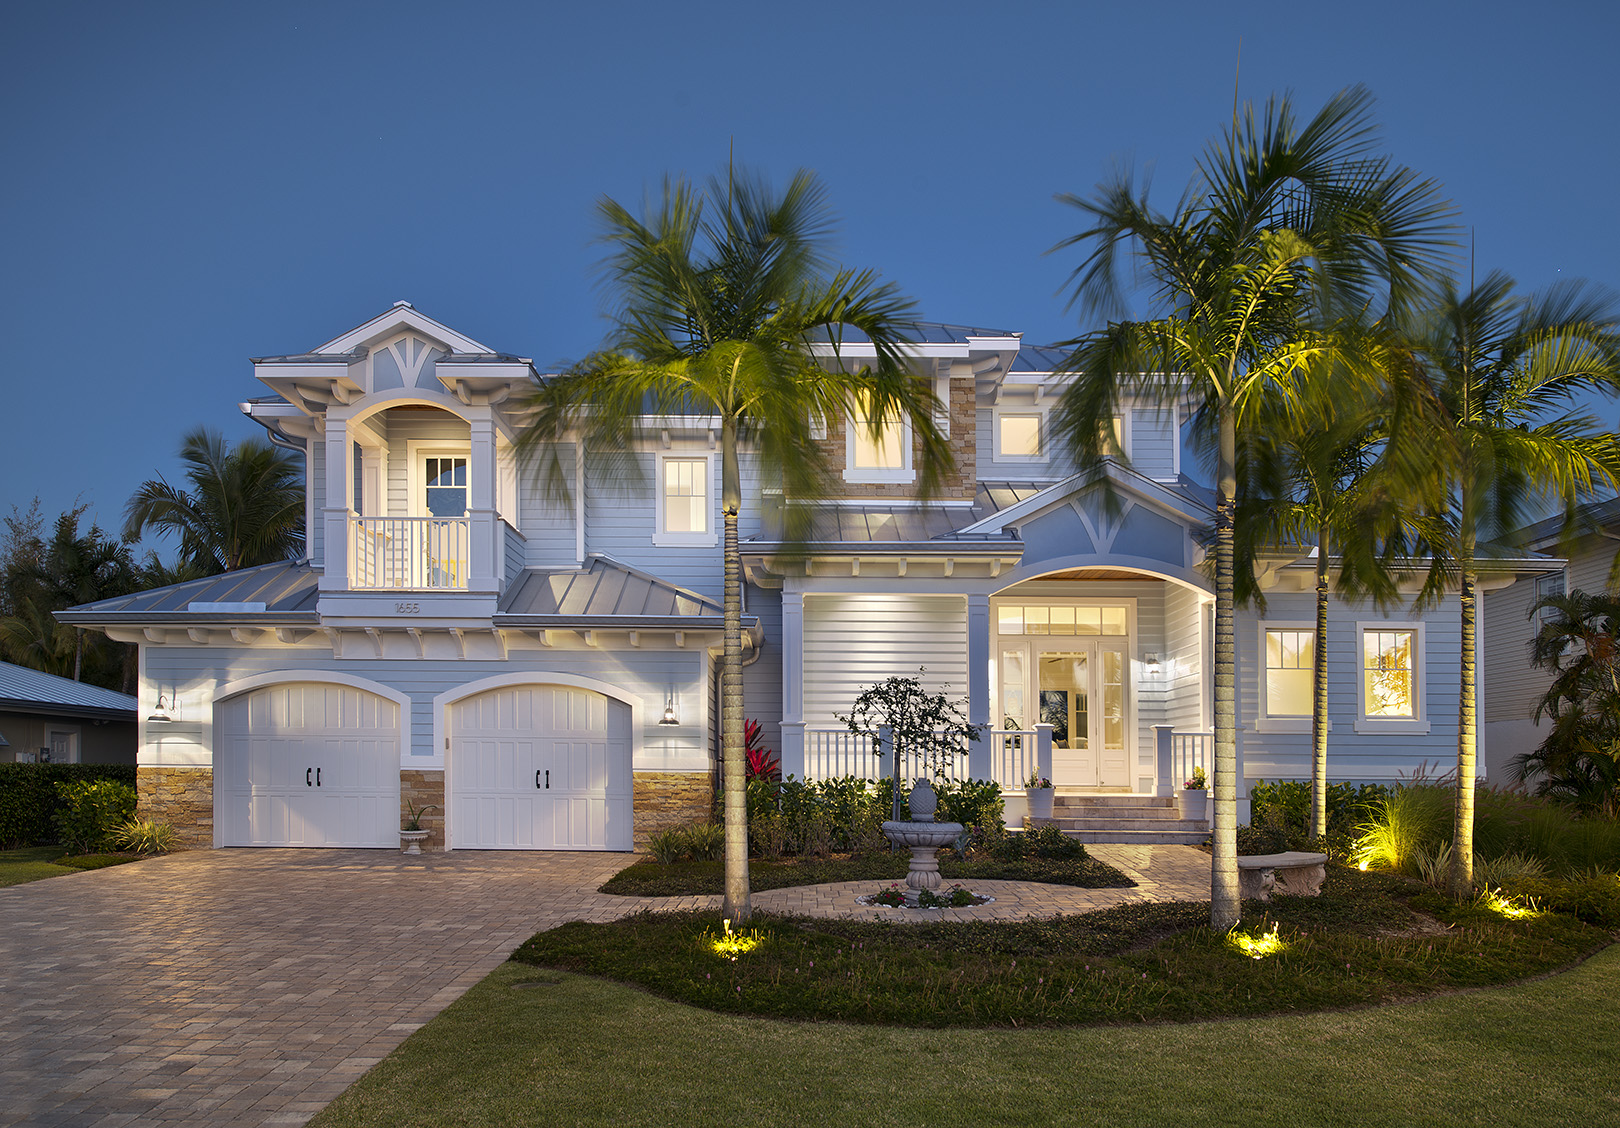 Key West Home Designs - Key west style home designs